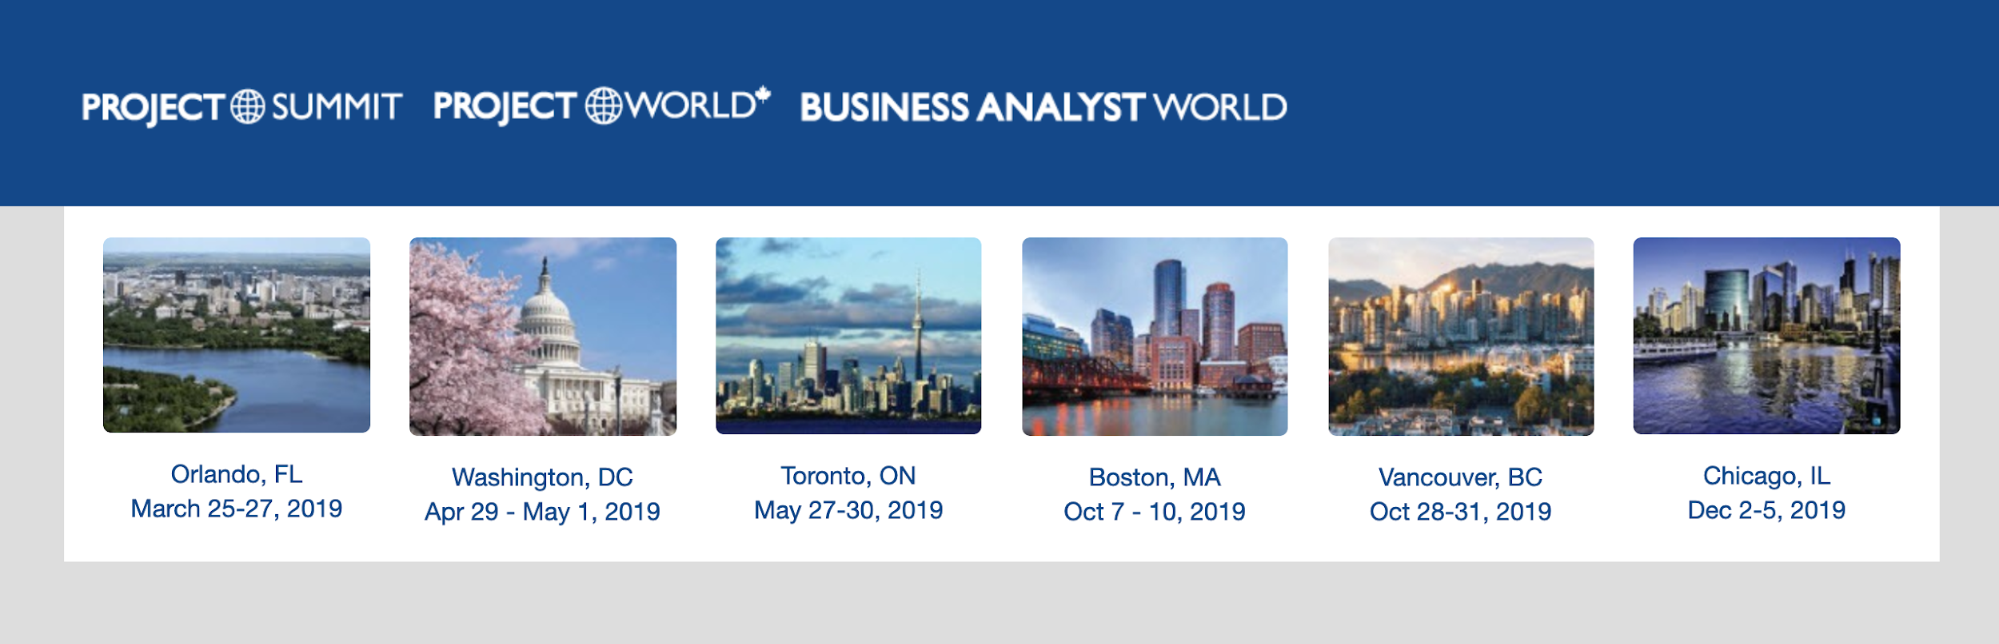 Project Summit Business Analyst World